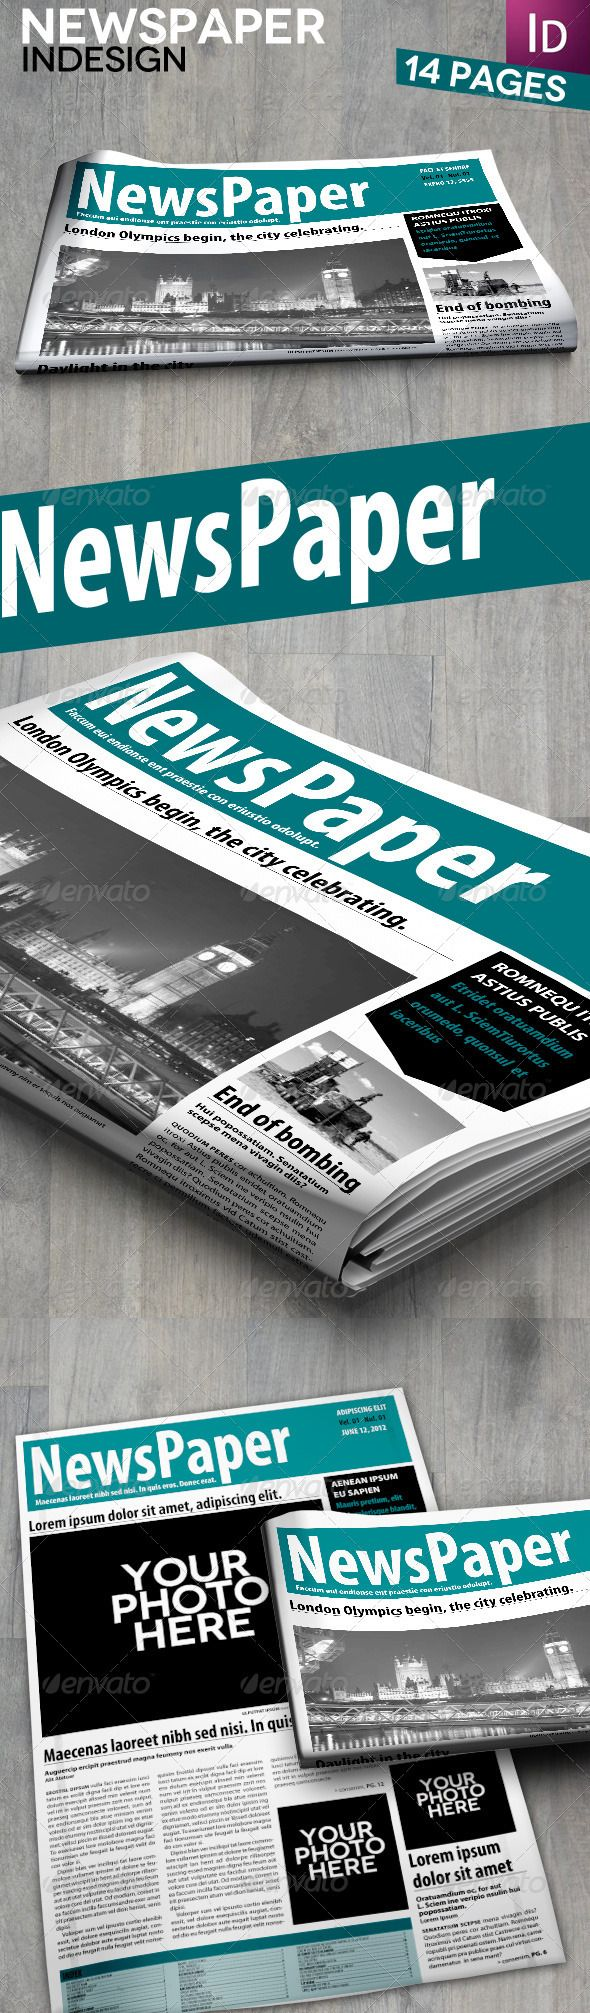 Indesign newspaper 14 pages print templates newsletter newsletters is it a more personal touch to have them mailed out does print pronofoot35fo Image collections